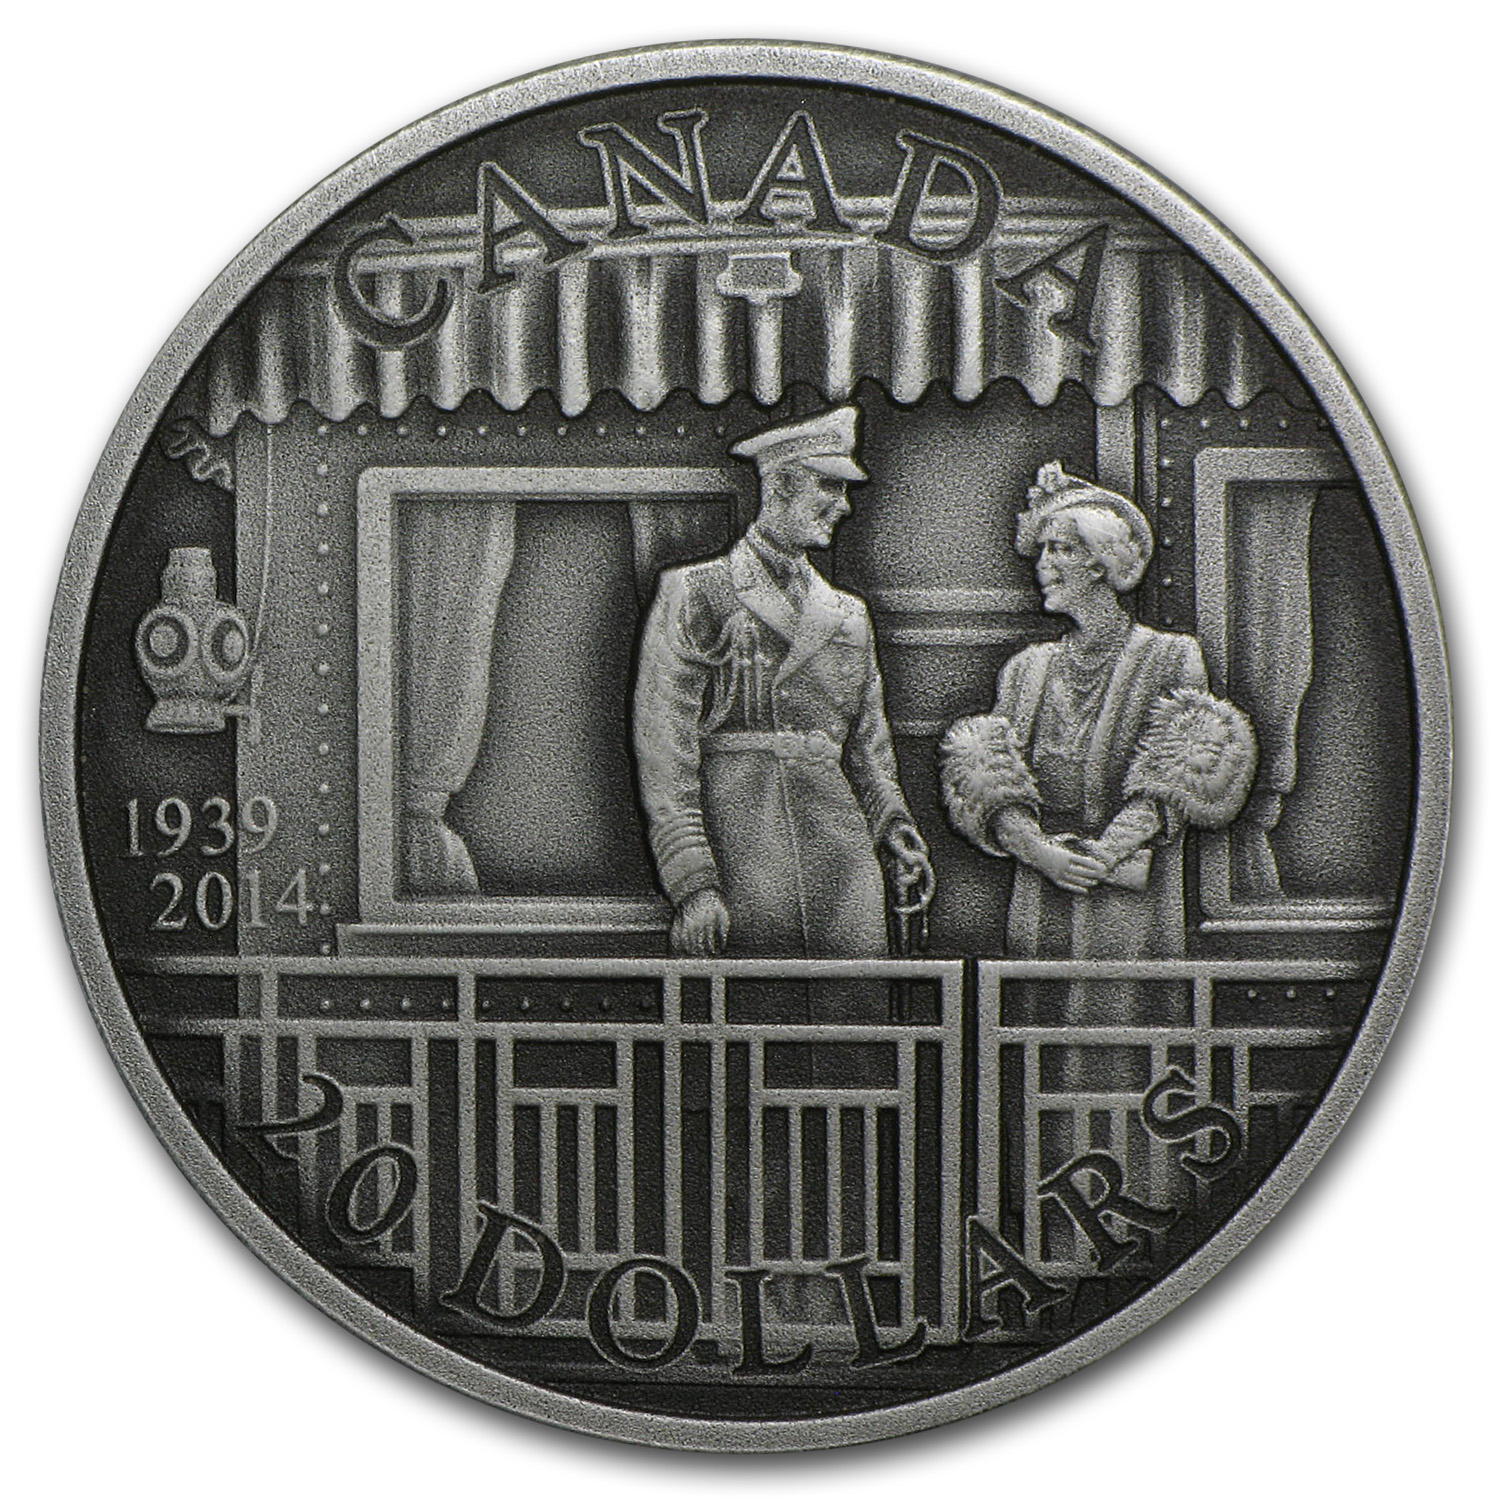 2014 Canada 1 oz Silver 75th Anniv of the First Royal Visit